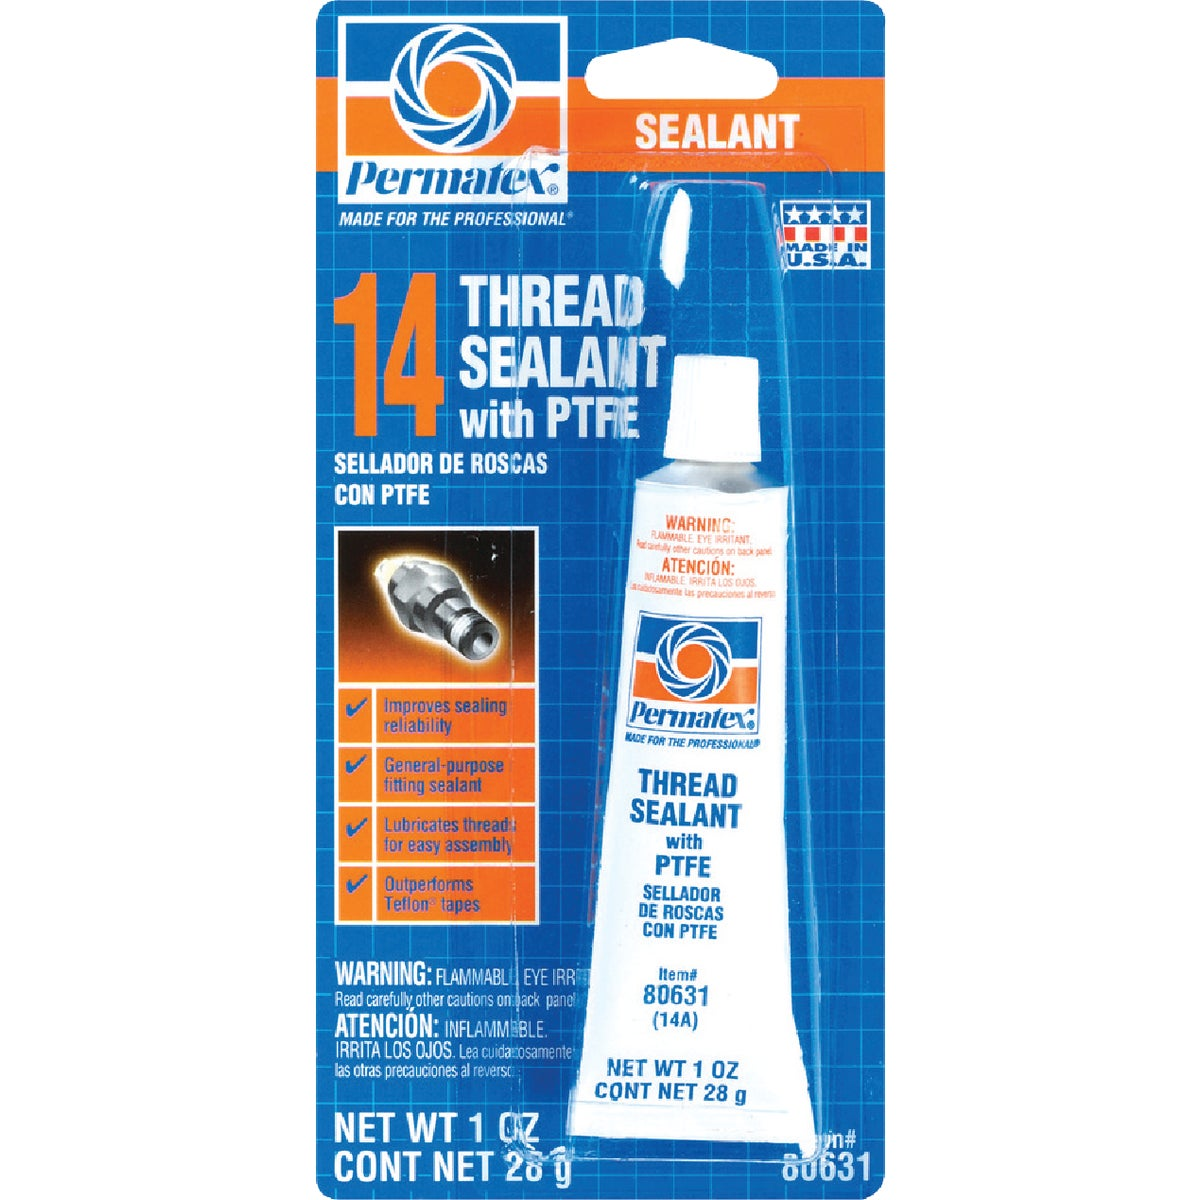 1OZ THREAD SEALANT